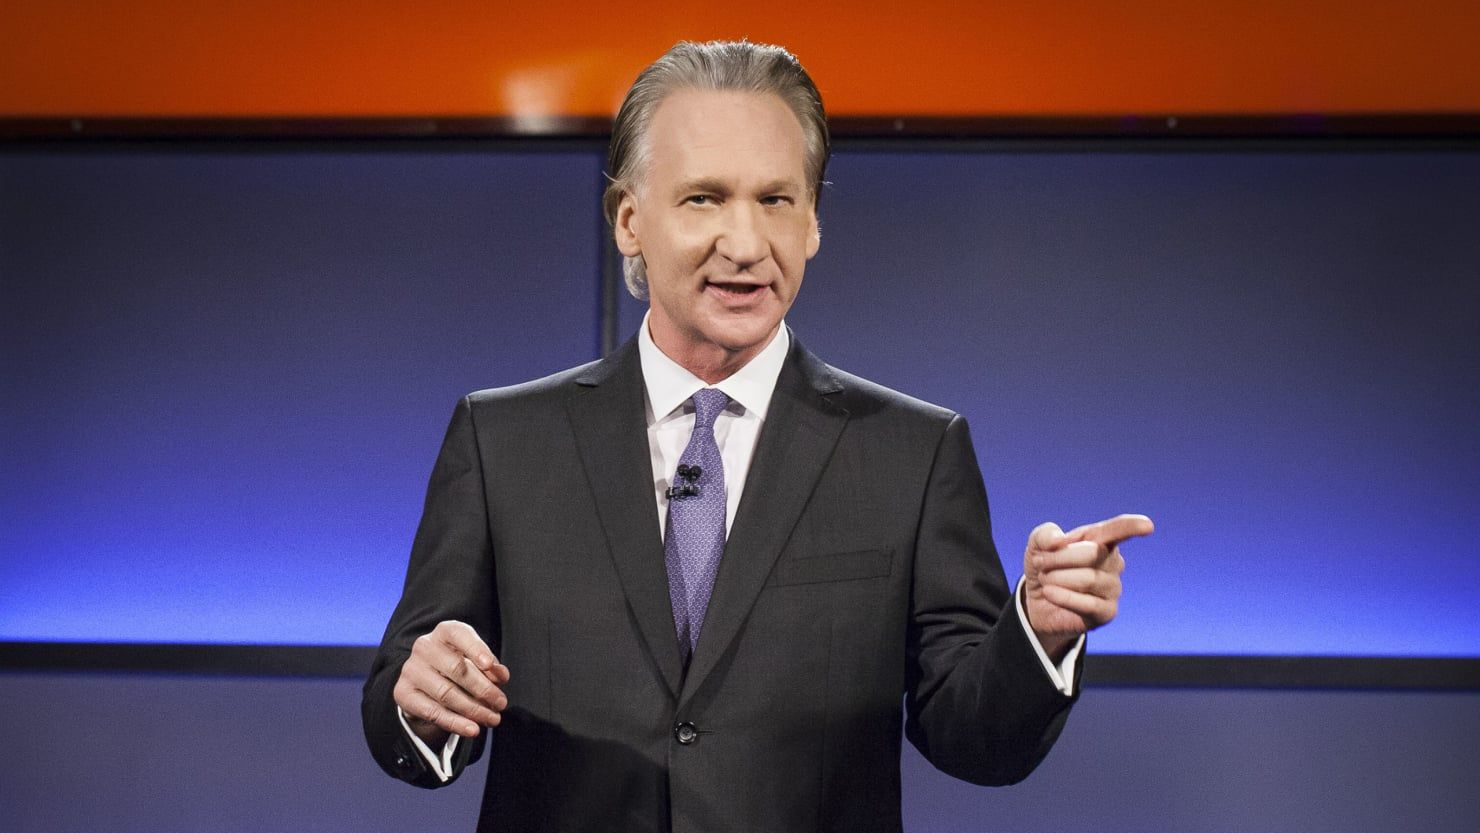 Bill Maher Blames Bill Clinton for Comey Drama: 'Let's Put the Blame Where It Belongs'   2017 may